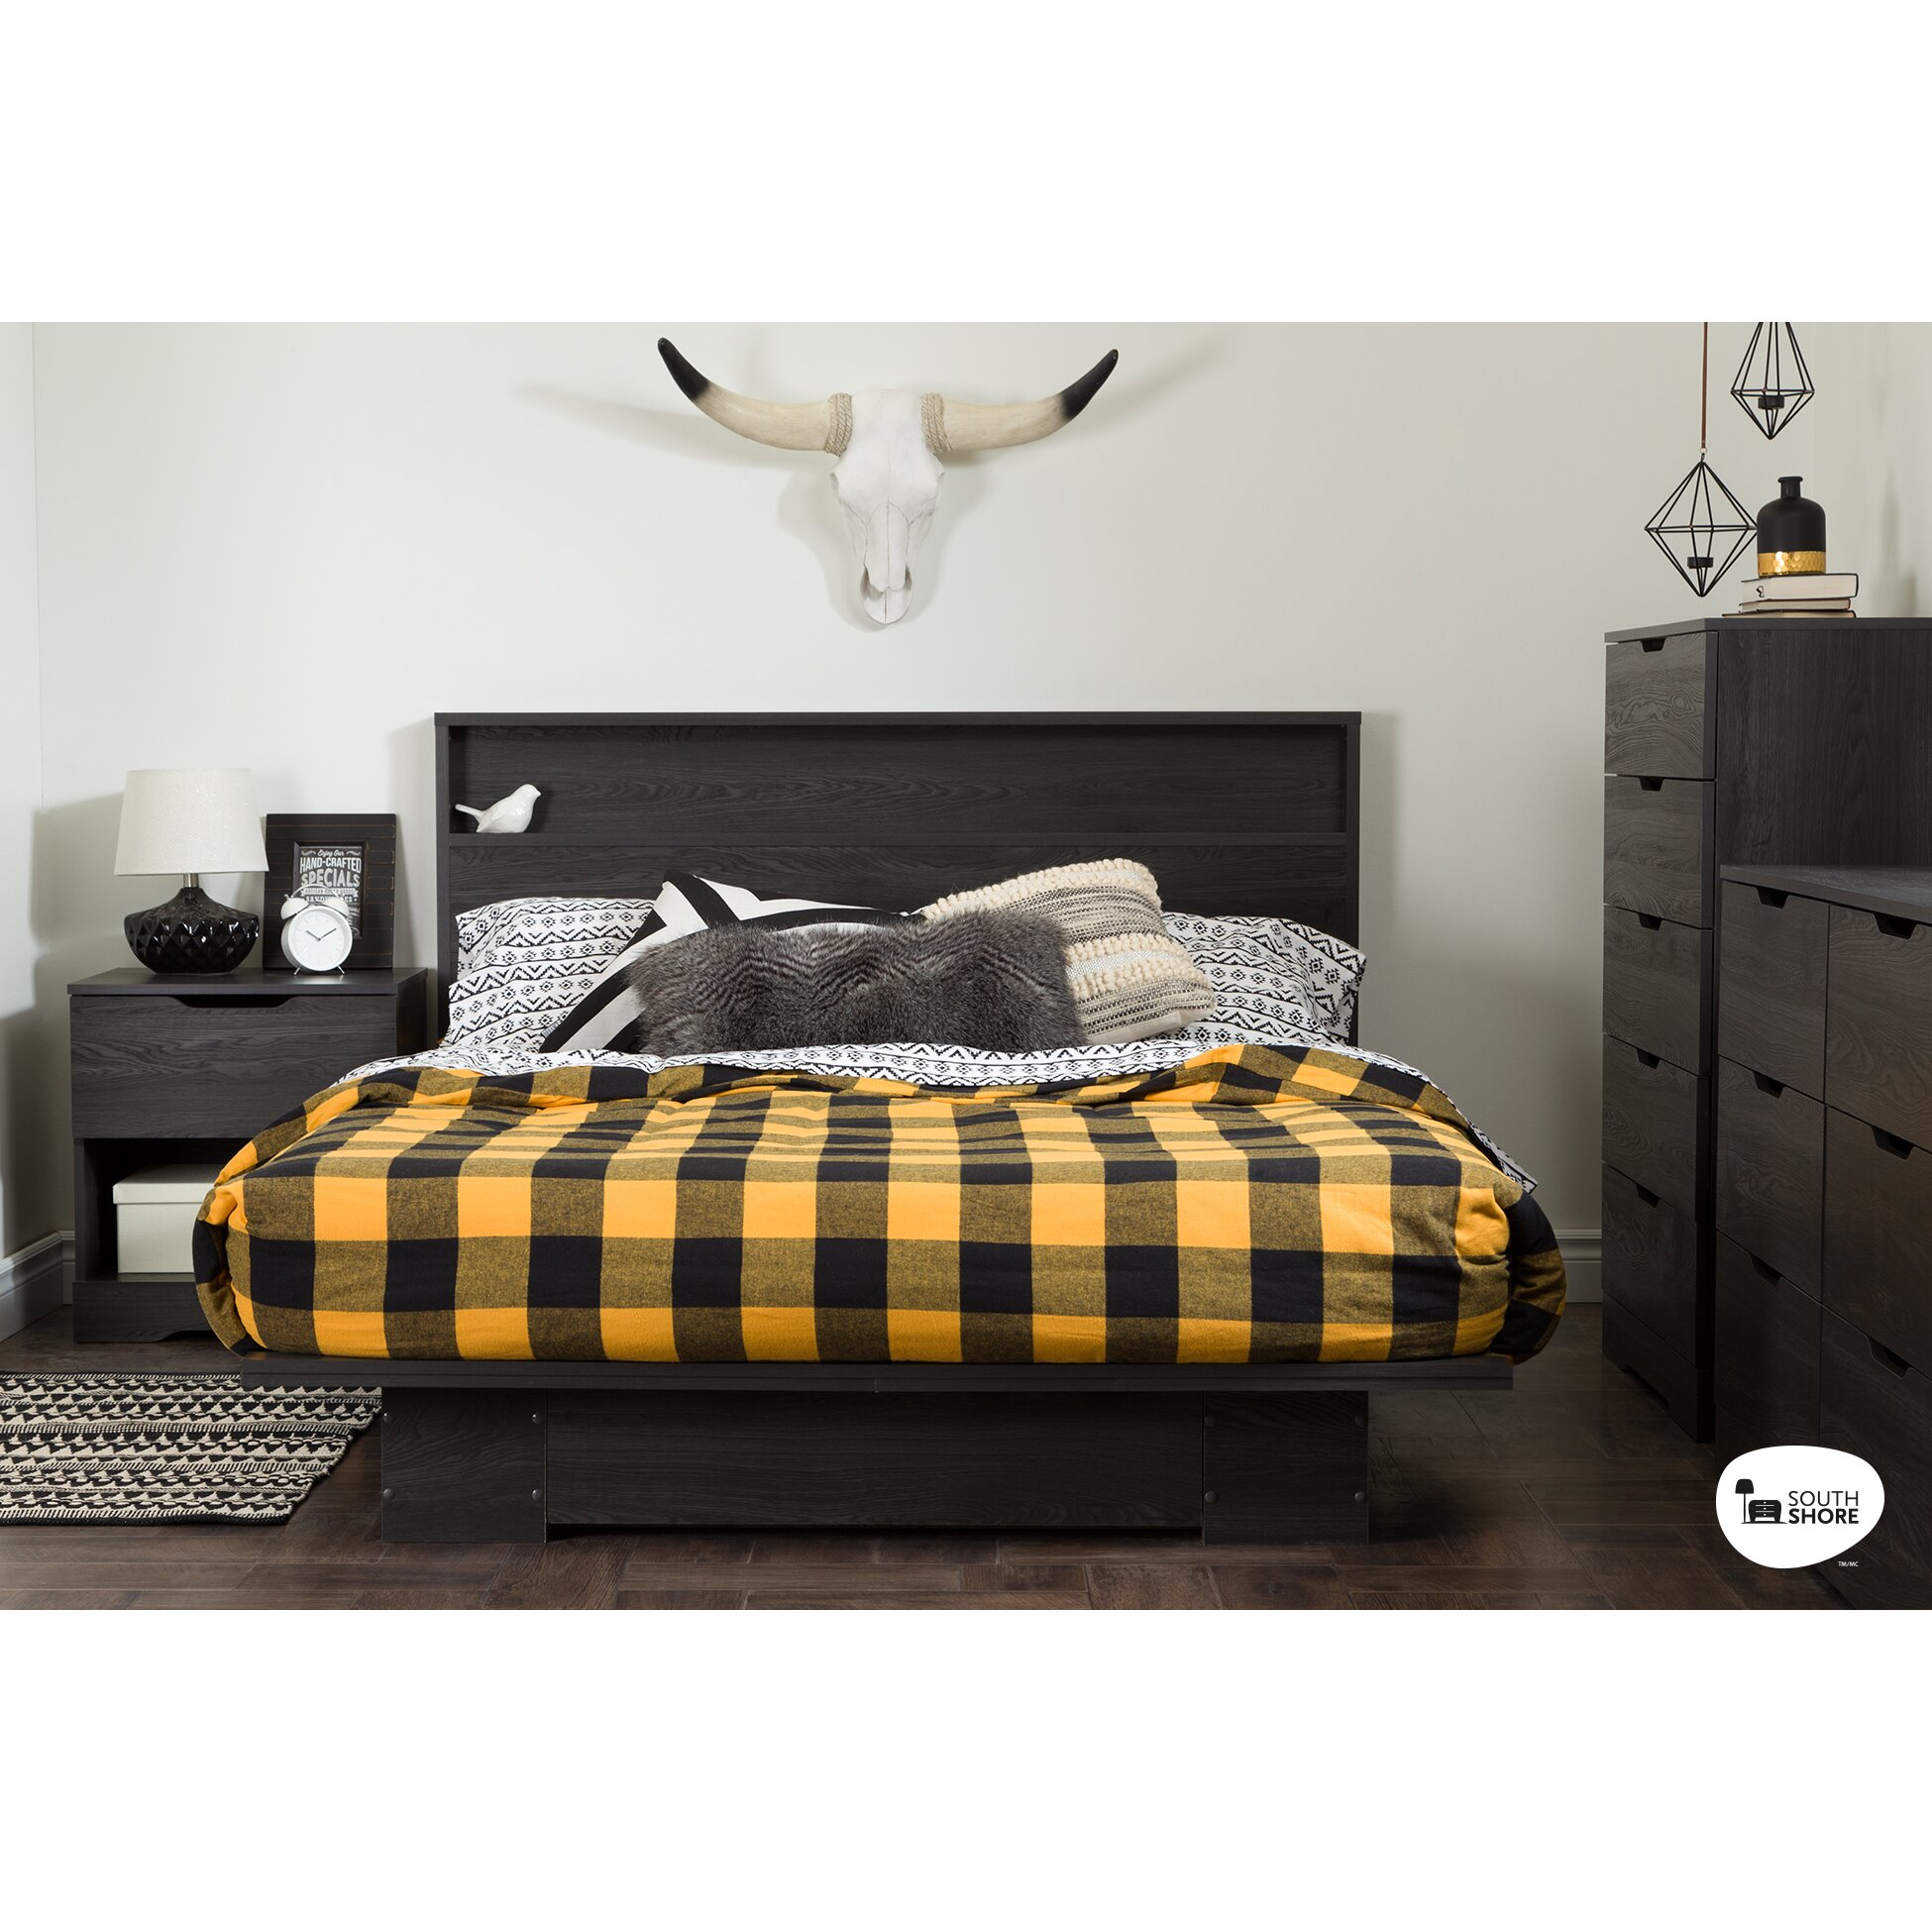 South Shore Holland Queen Storage Bed